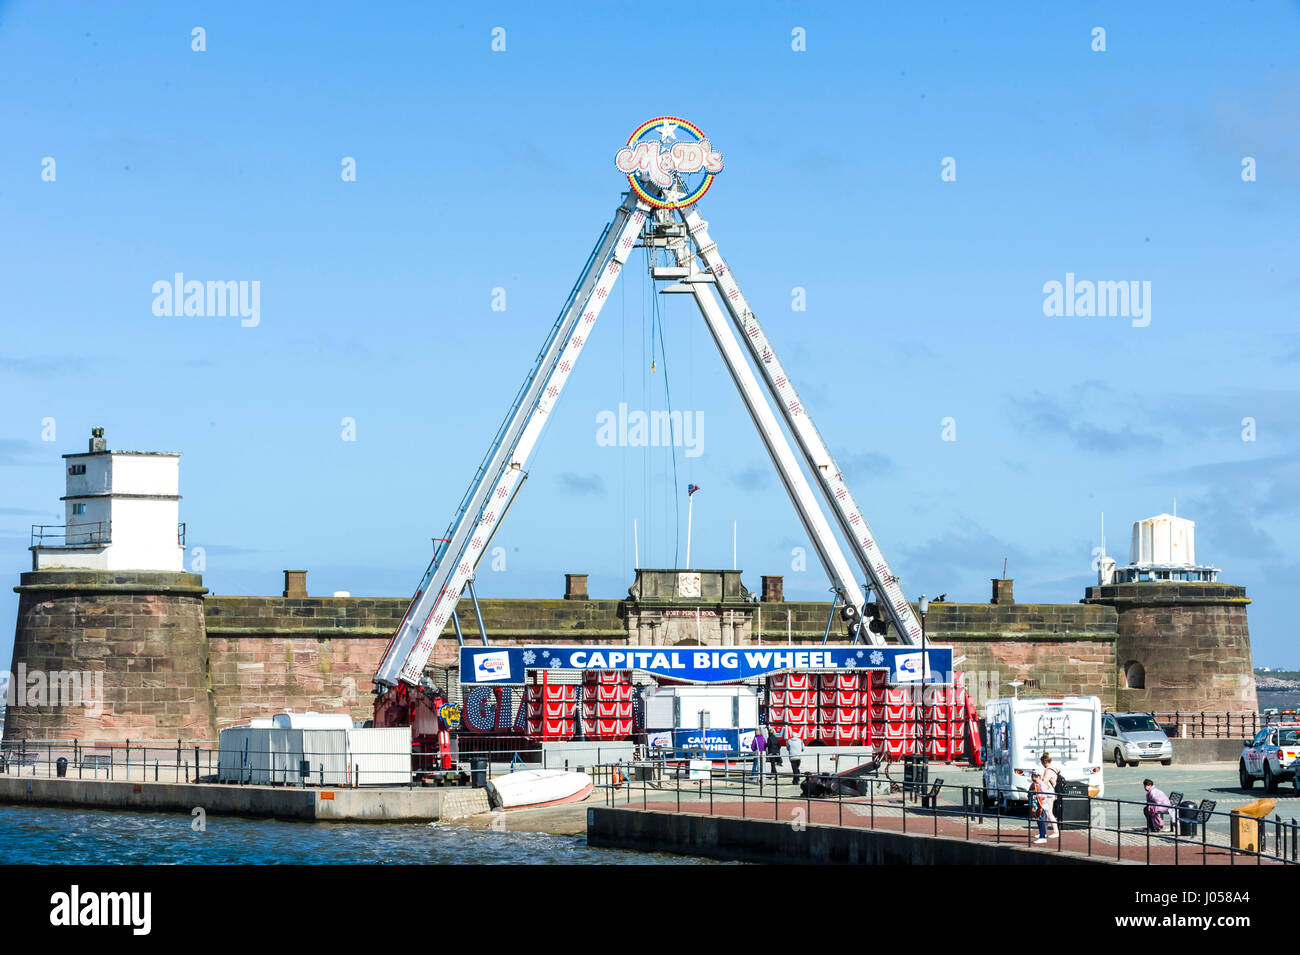 New Brighton, Wirral, UK. 10th Apr, 2017. Construction has commenced on the Capital Big Wheel, which will be open - Stock Image